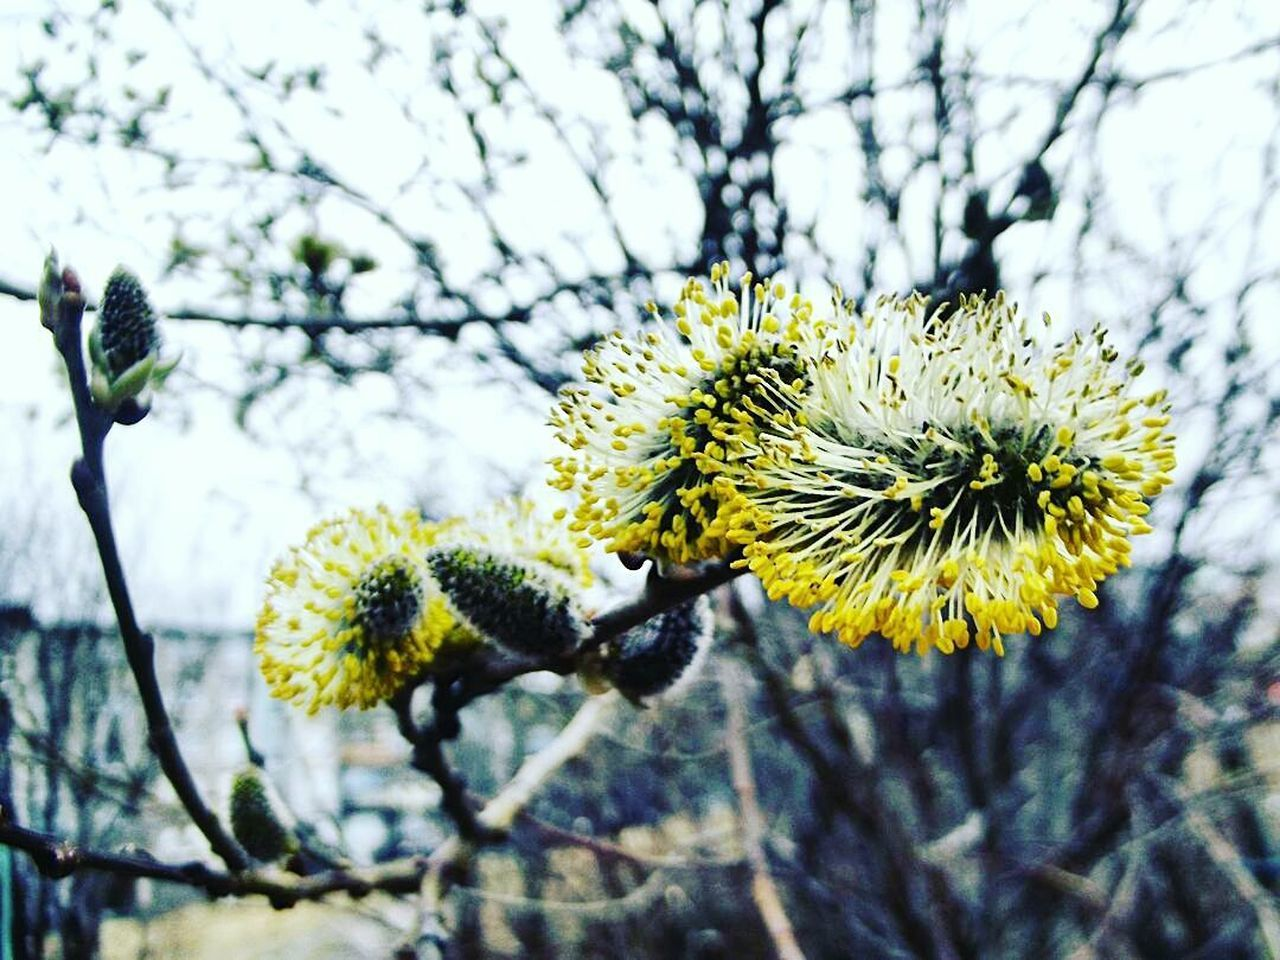 nature, flower, growth, yellow, beauty in nature, day, focus on foreground, one animal, no people, outdoors, fragility, close-up, insect, plant, animal themes, tree, branch, freshness, flower head